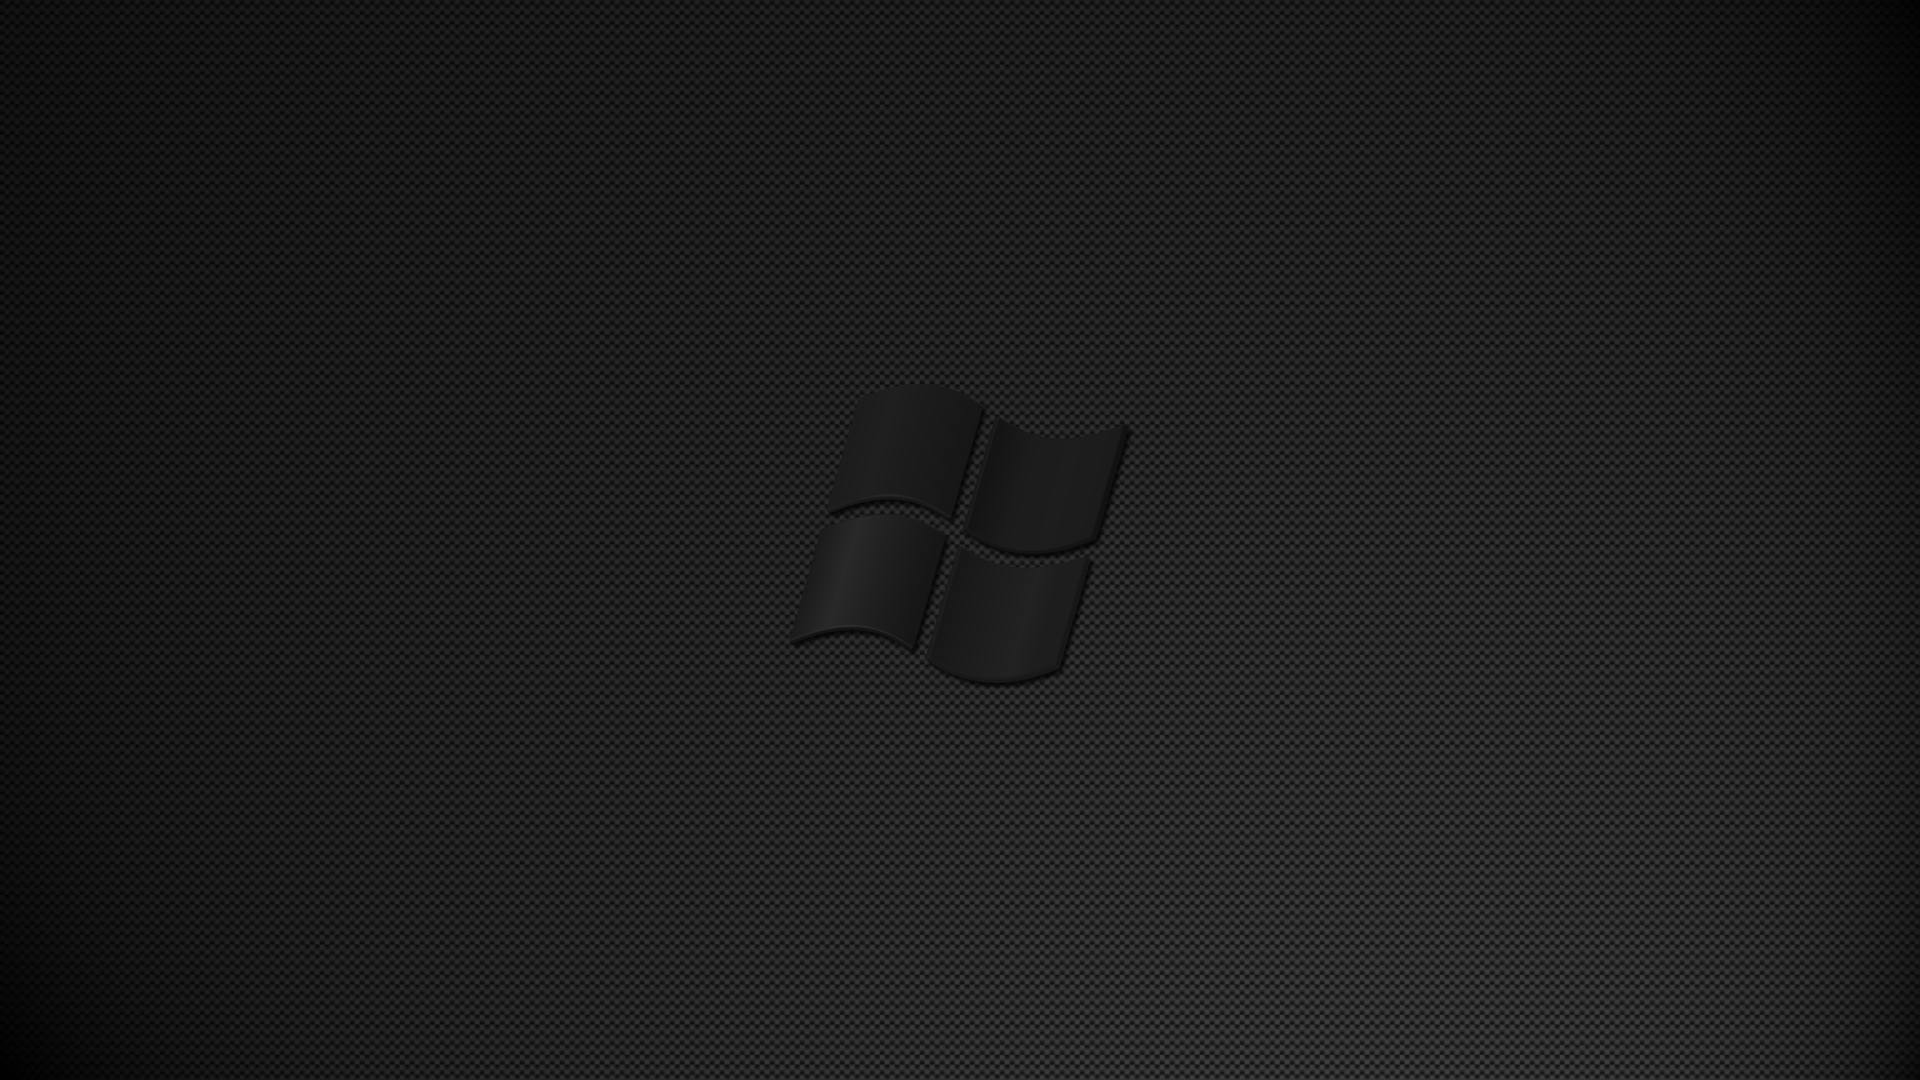 1920x1200px hd windows 7 wallpaper dark - wallpapersafari